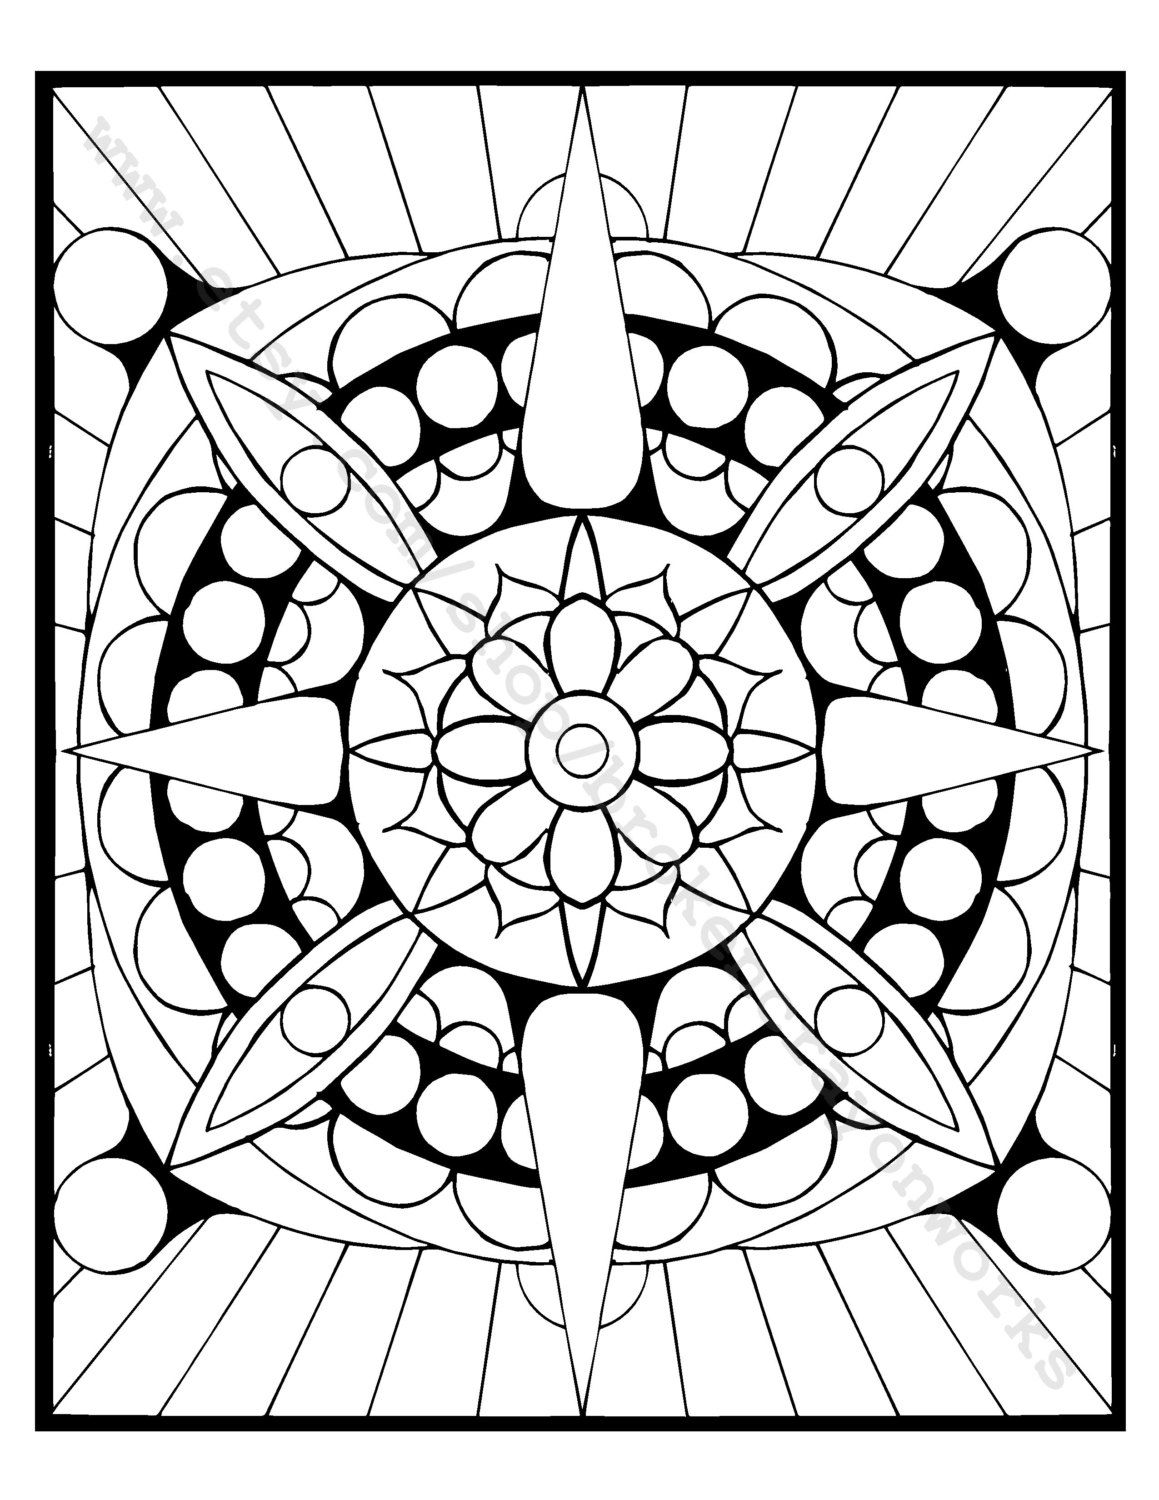 Coloring Page Alien Flower by BrokenCrayonWorks on Etsy | To Color ...